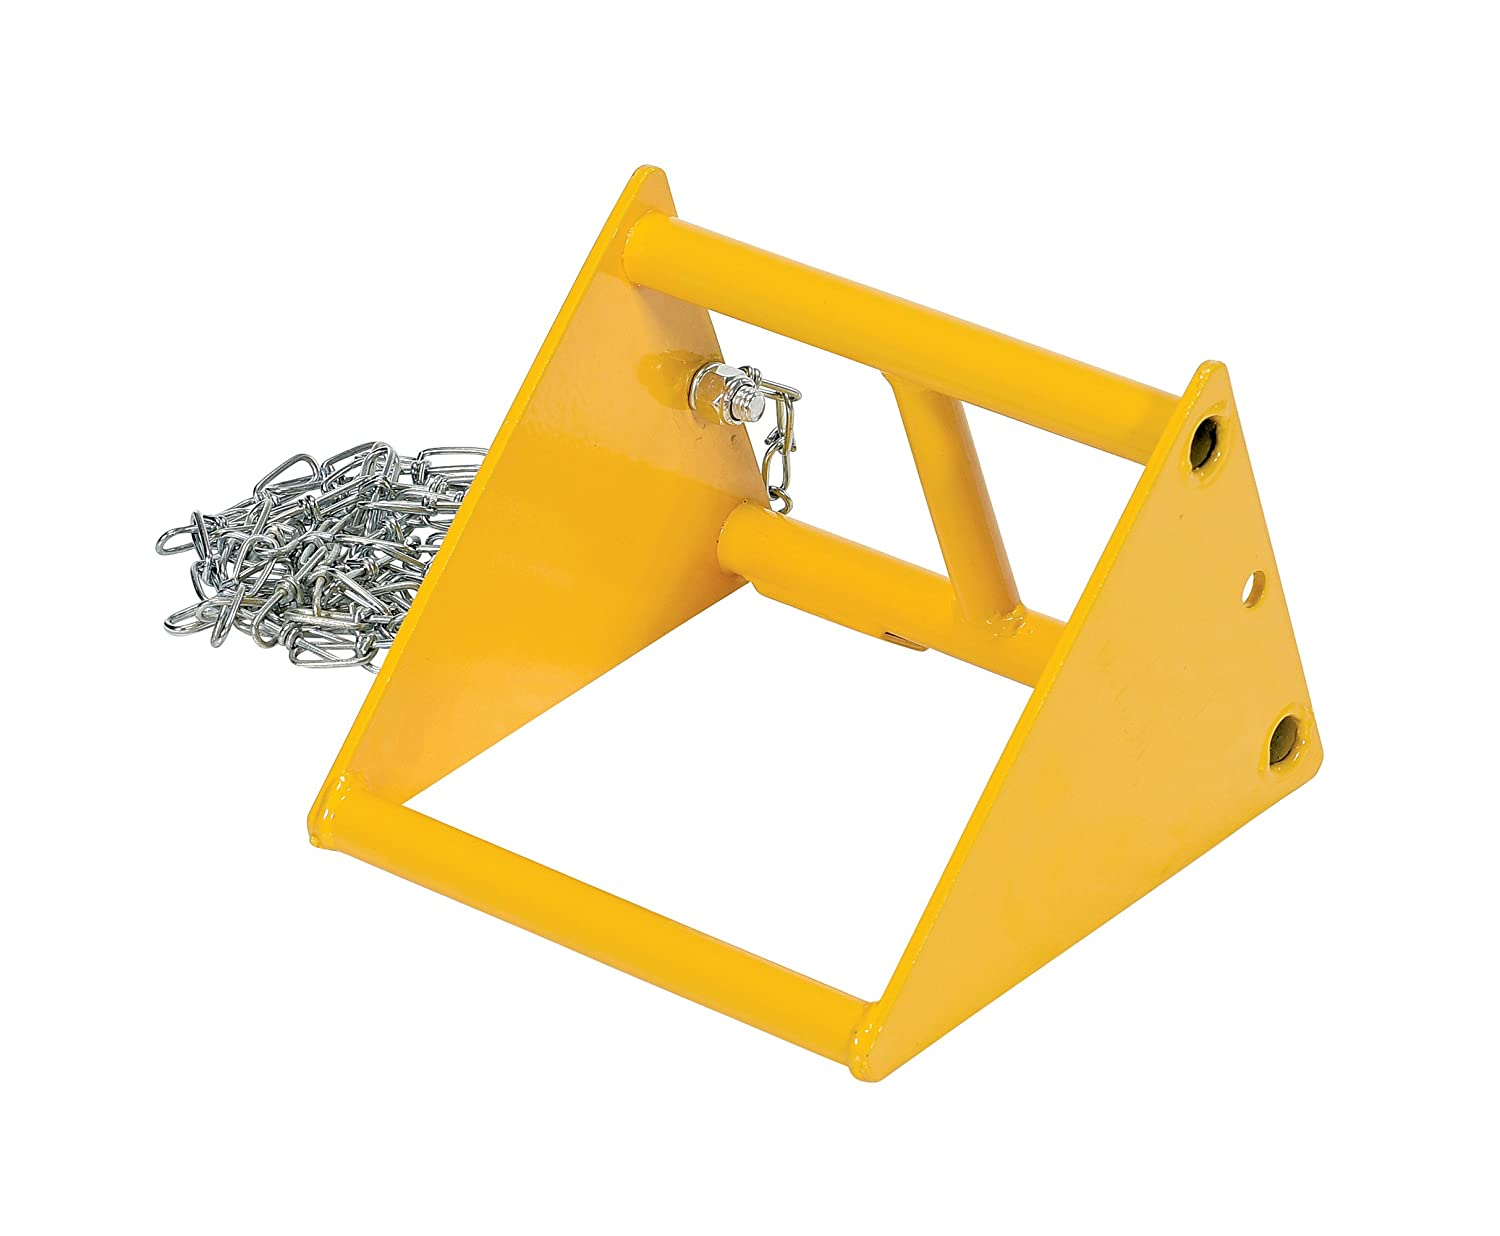 Overall W x L x H Vestil FAB-10 Fabricated Steel Wheel Chock in. 9-13//16 x 9-15//16 x 8-1//4 Vestil Manufacturing Corp